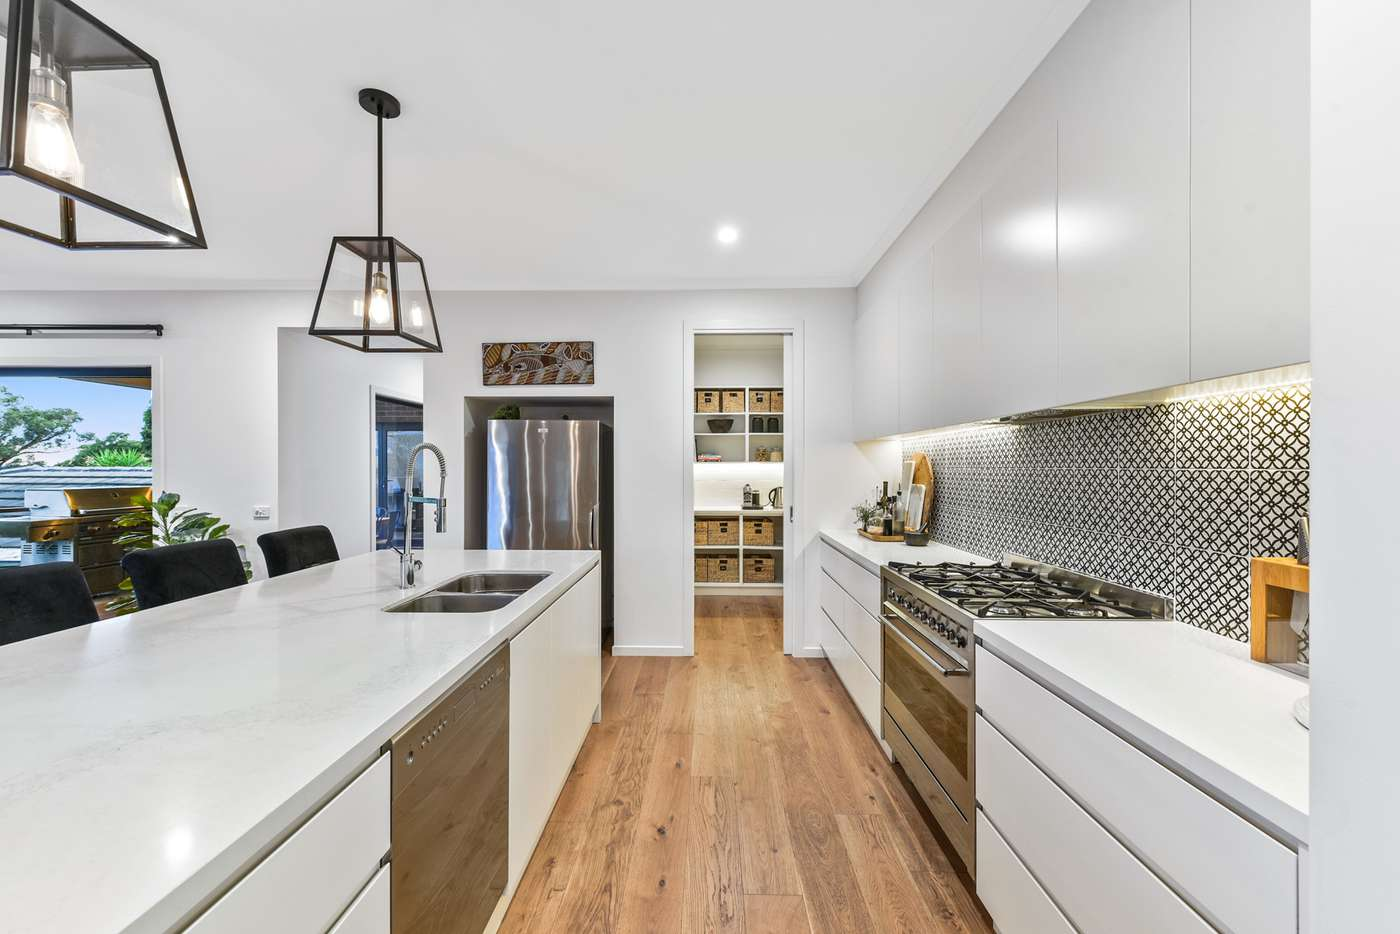 Sixth view of Homely house listing, 19 Tranquillity Place, Beaconsfield VIC 3807